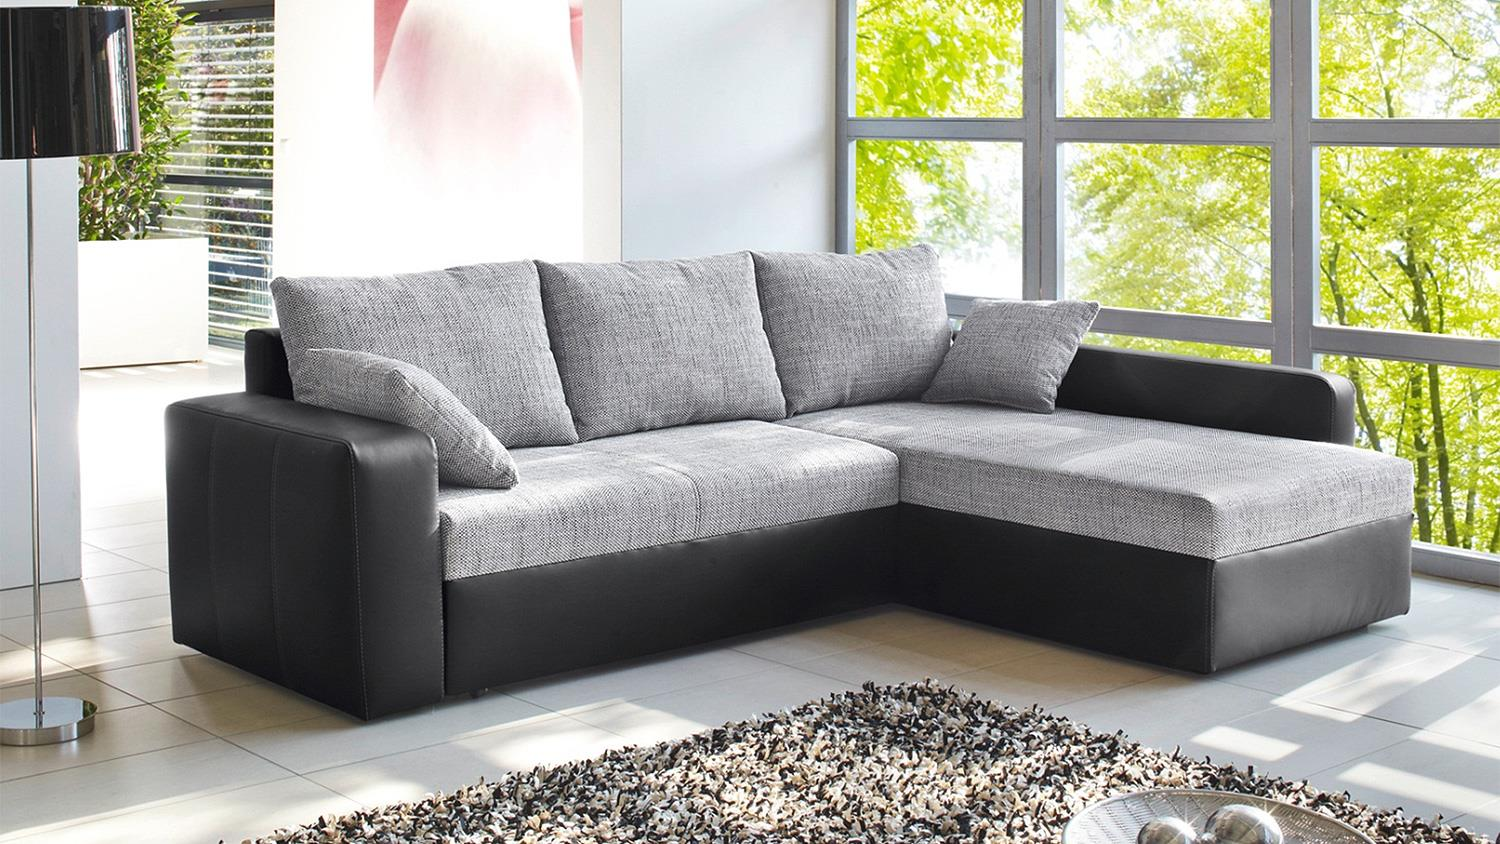 ecksofa viper sofa in schwarz und grau mit bettfunktion. Black Bedroom Furniture Sets. Home Design Ideas